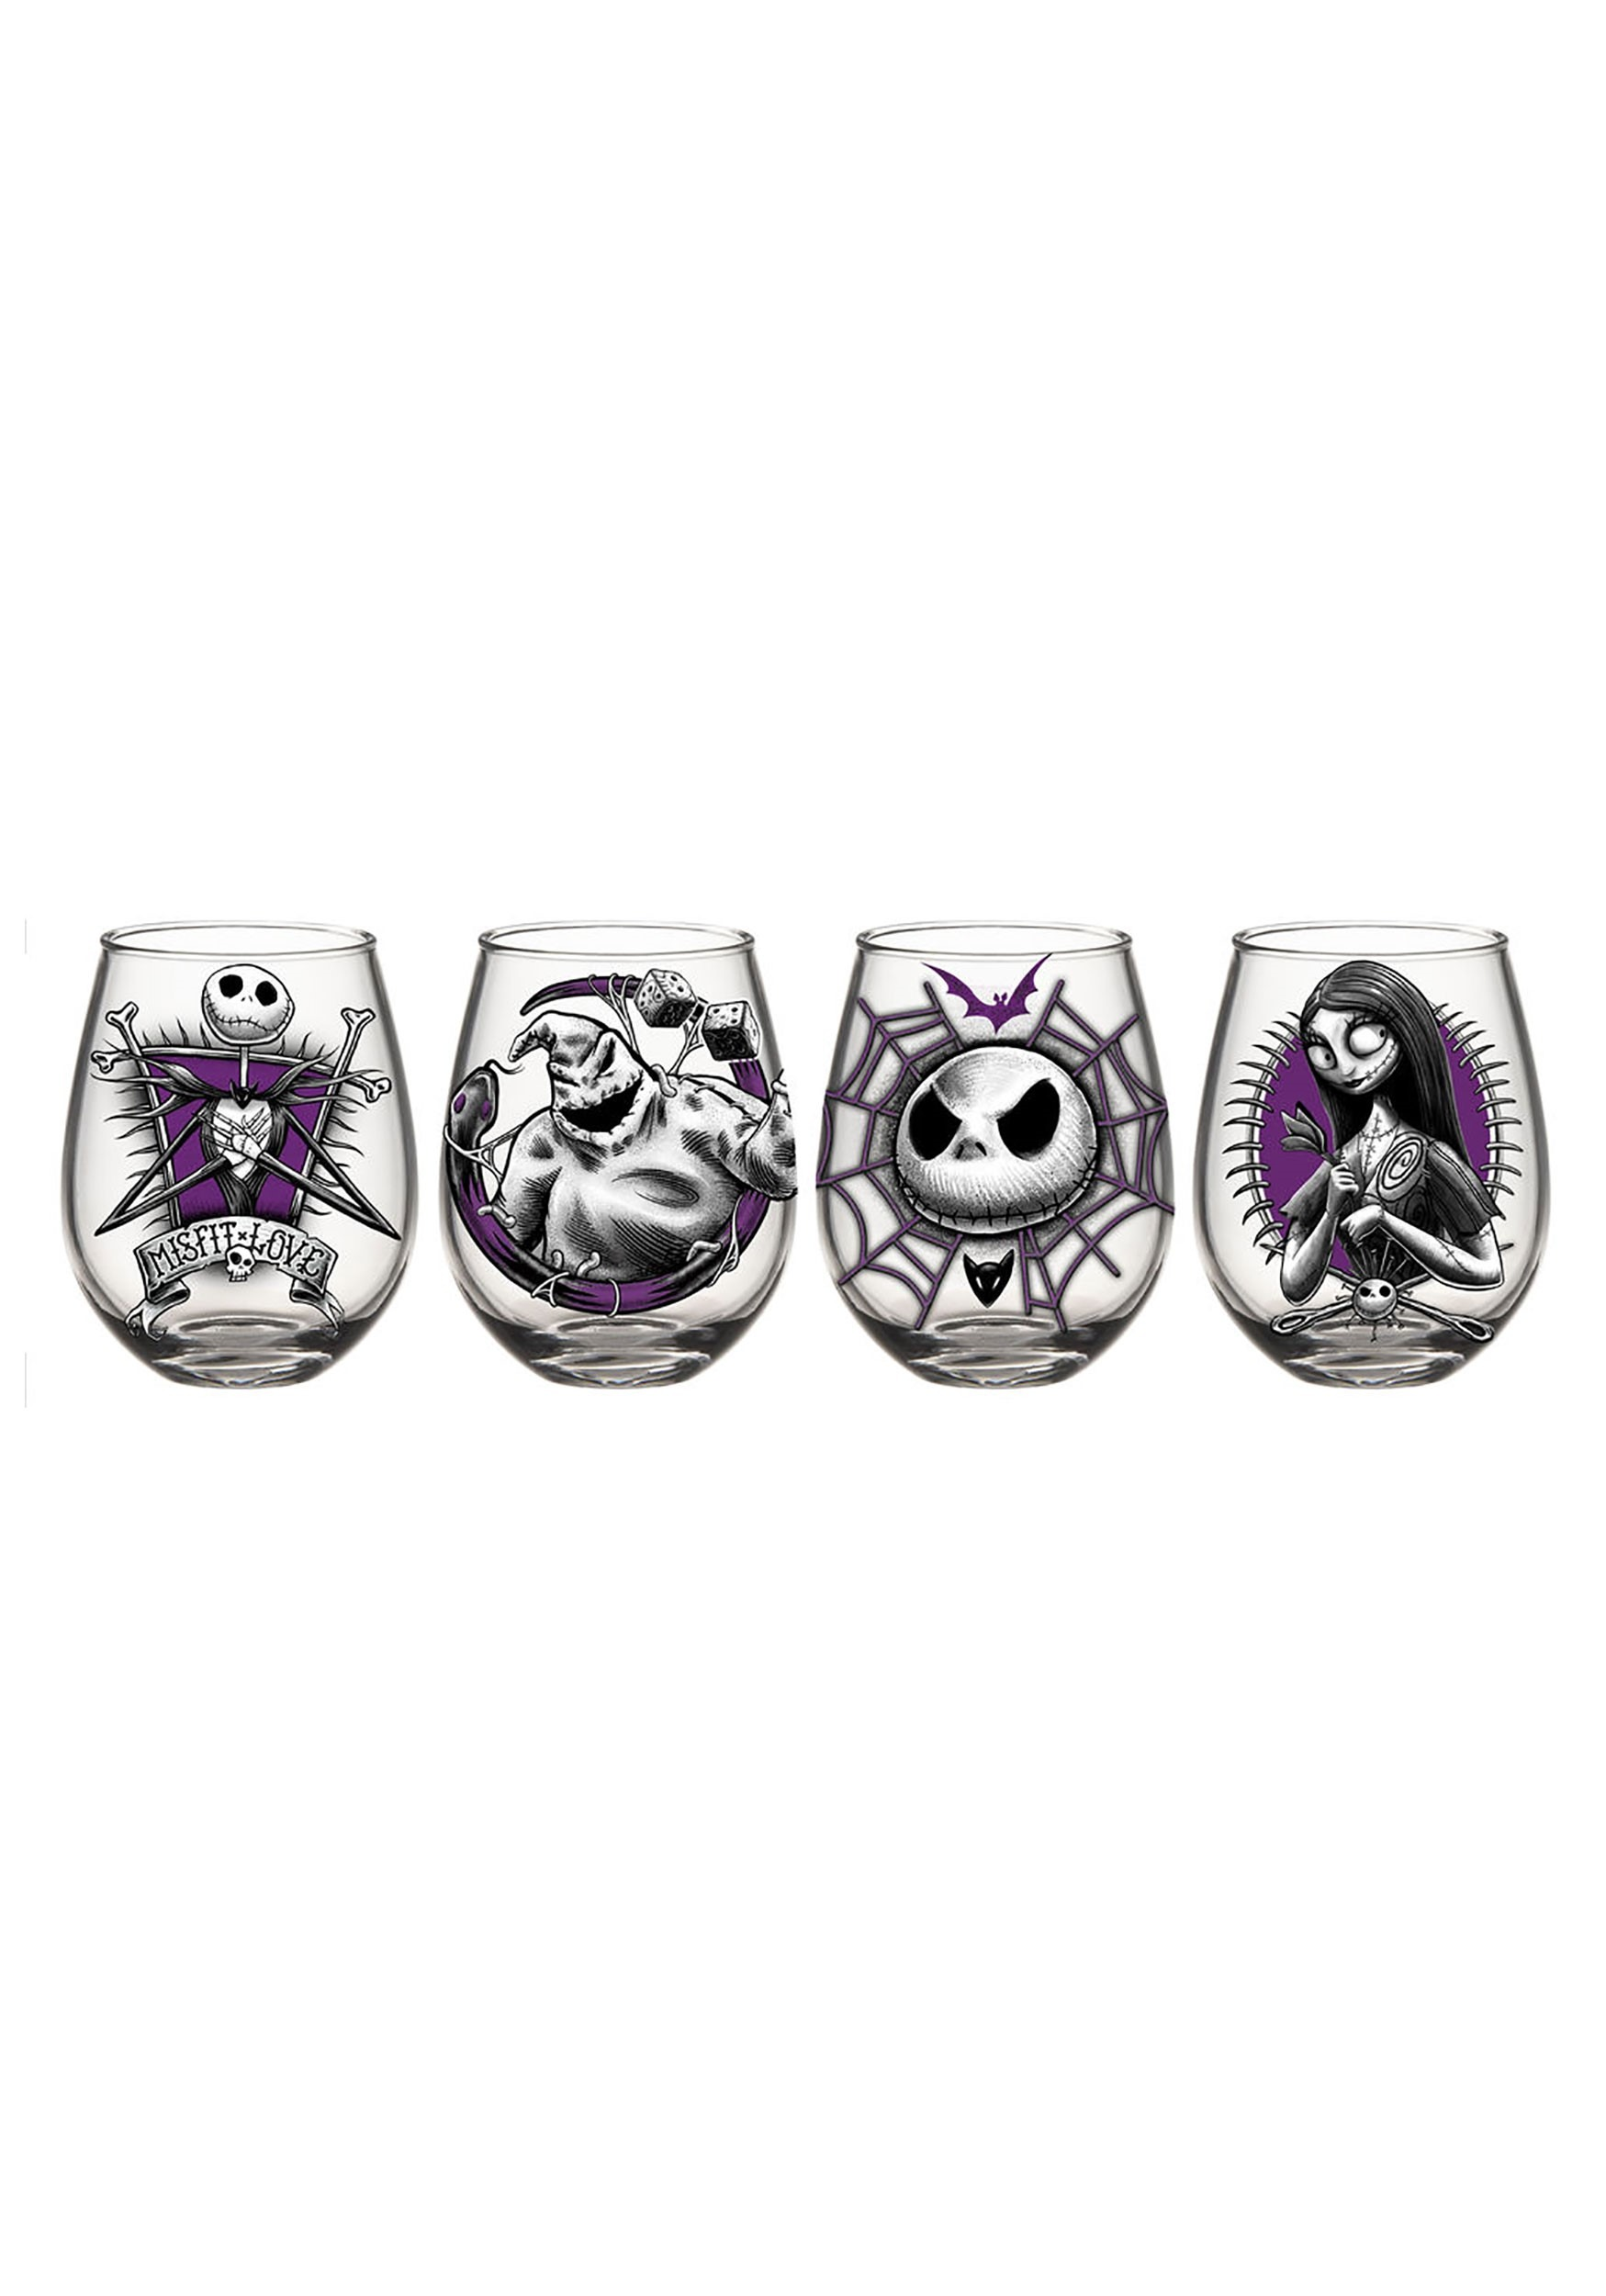 Nightmare before christmas 4pc 20oz stemless wine